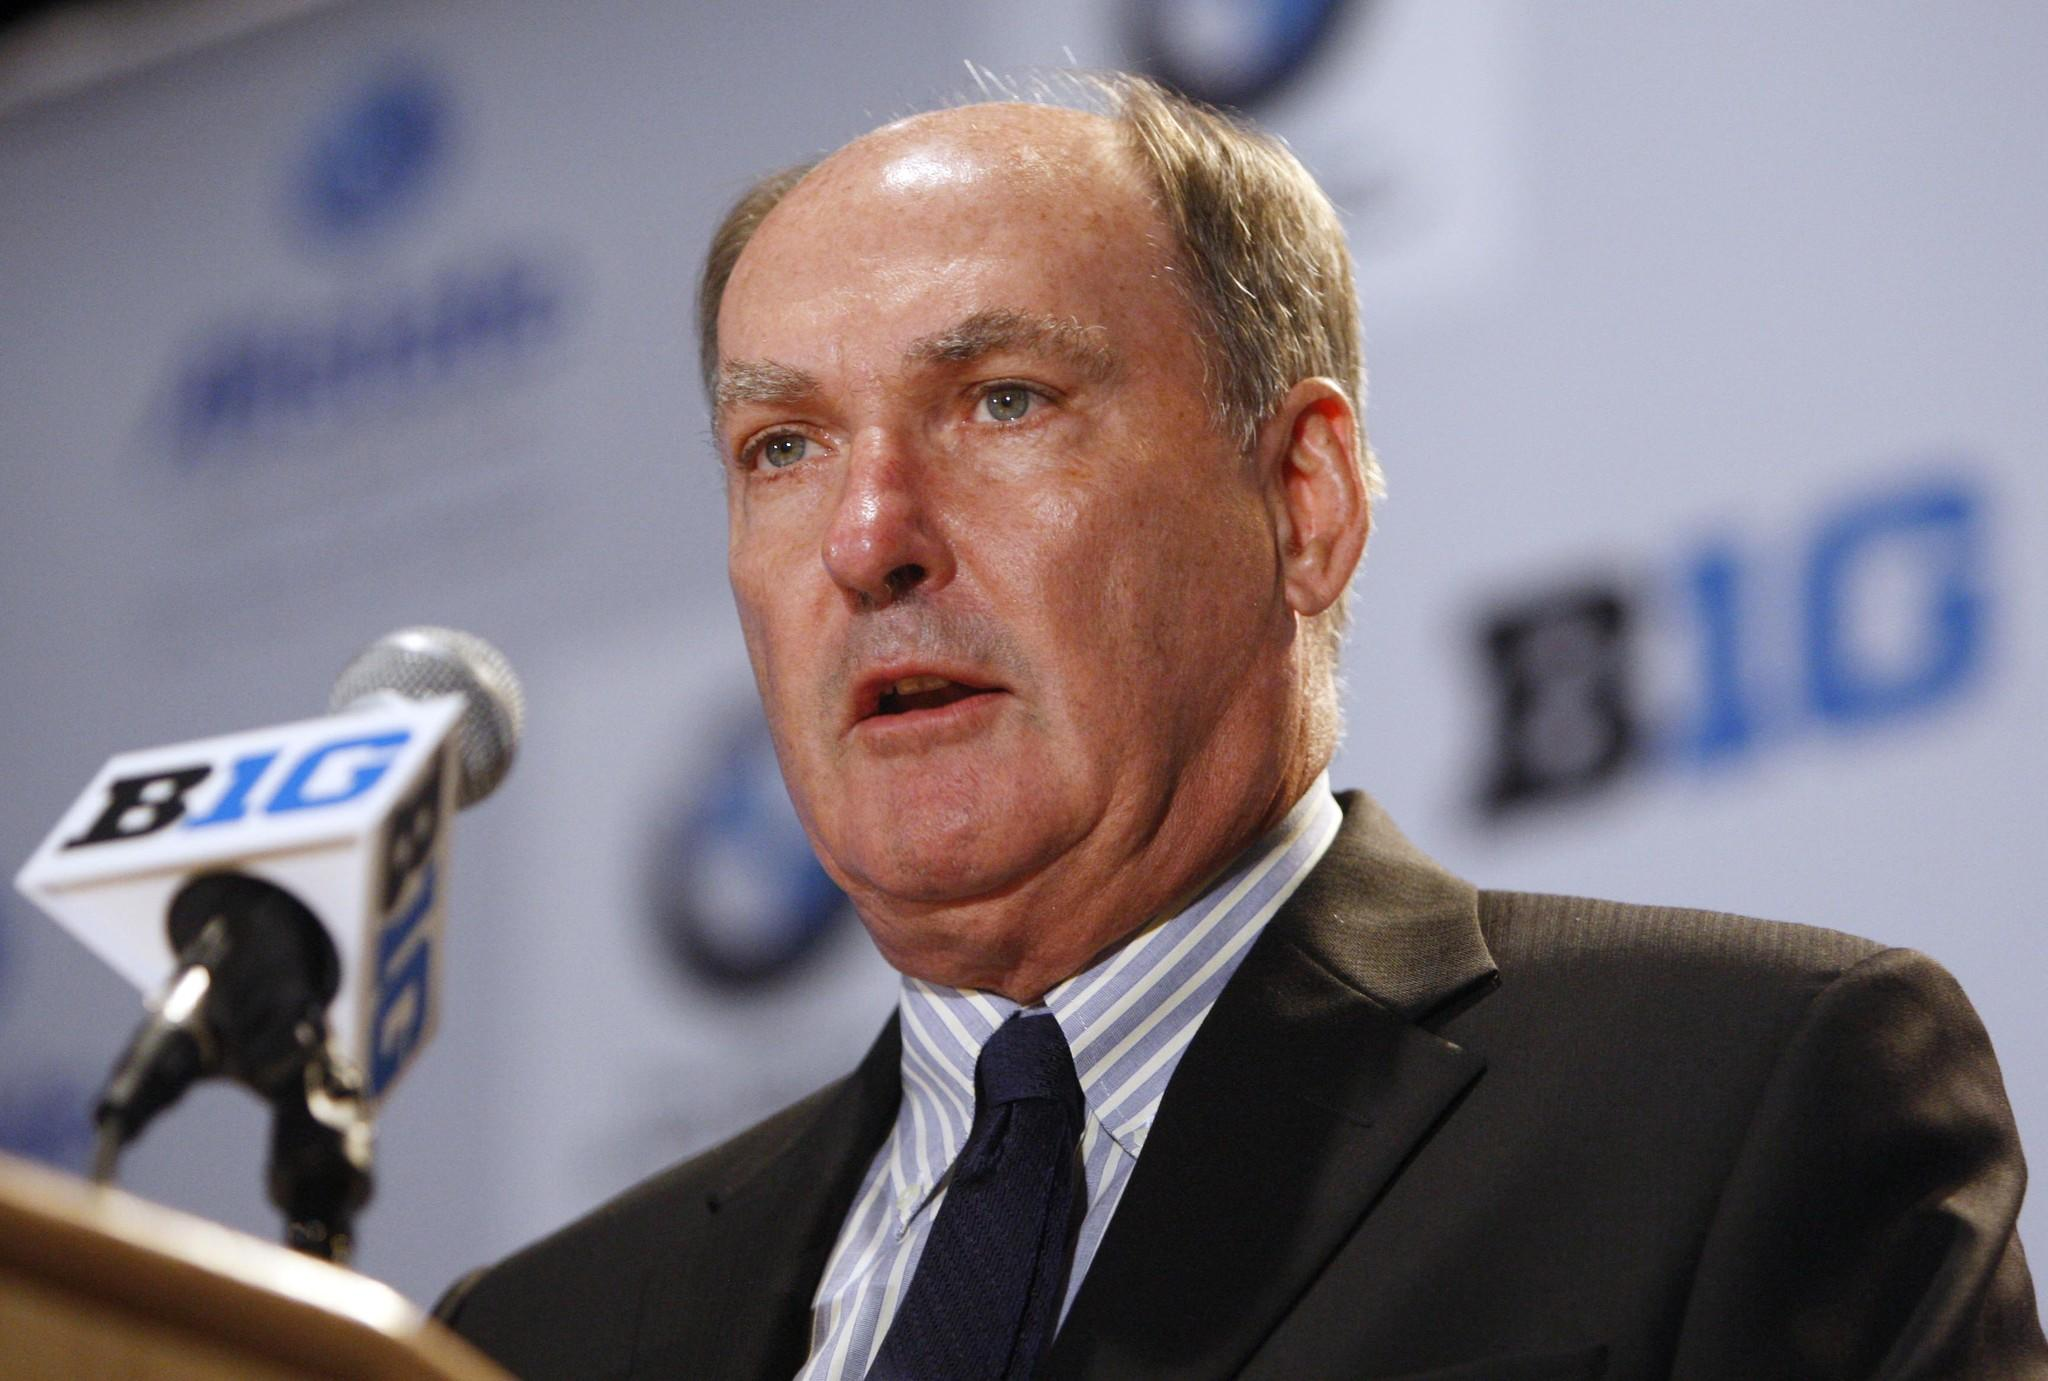 Big Ten commissioner Jim Delany said there are no plans in the works for Friday night games.